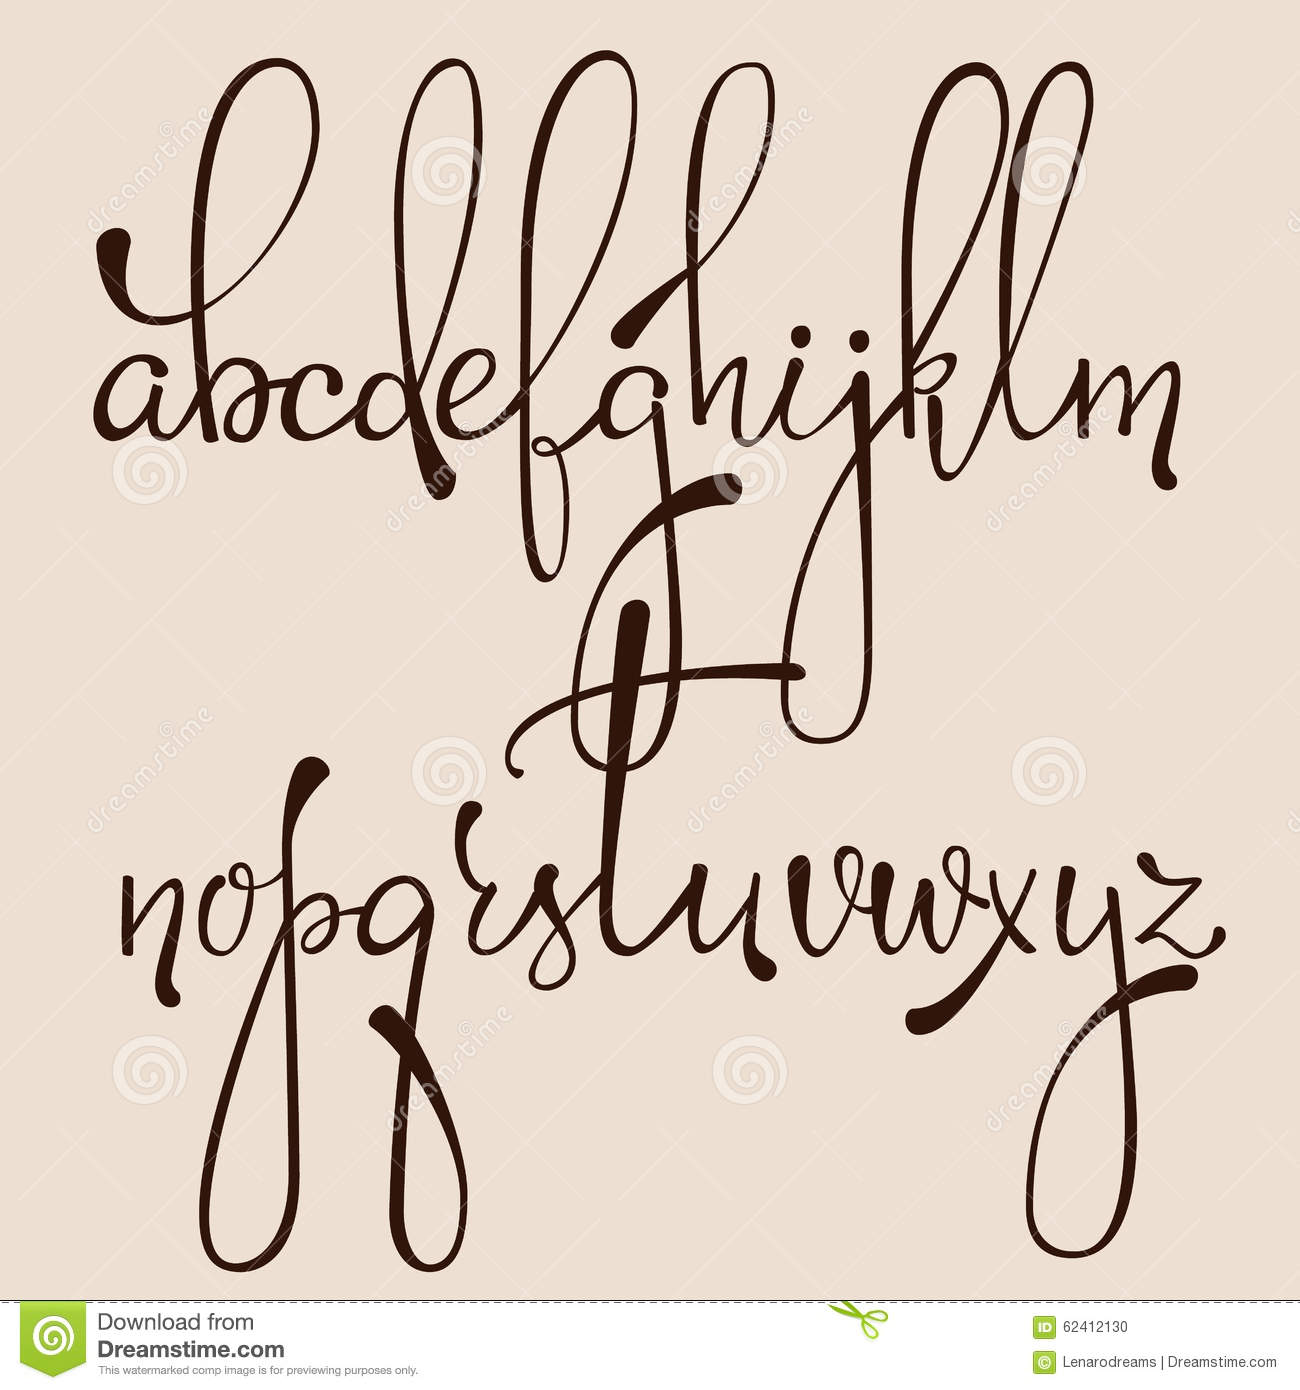 calligraphy cursive font stock illustration. illustration of drawn